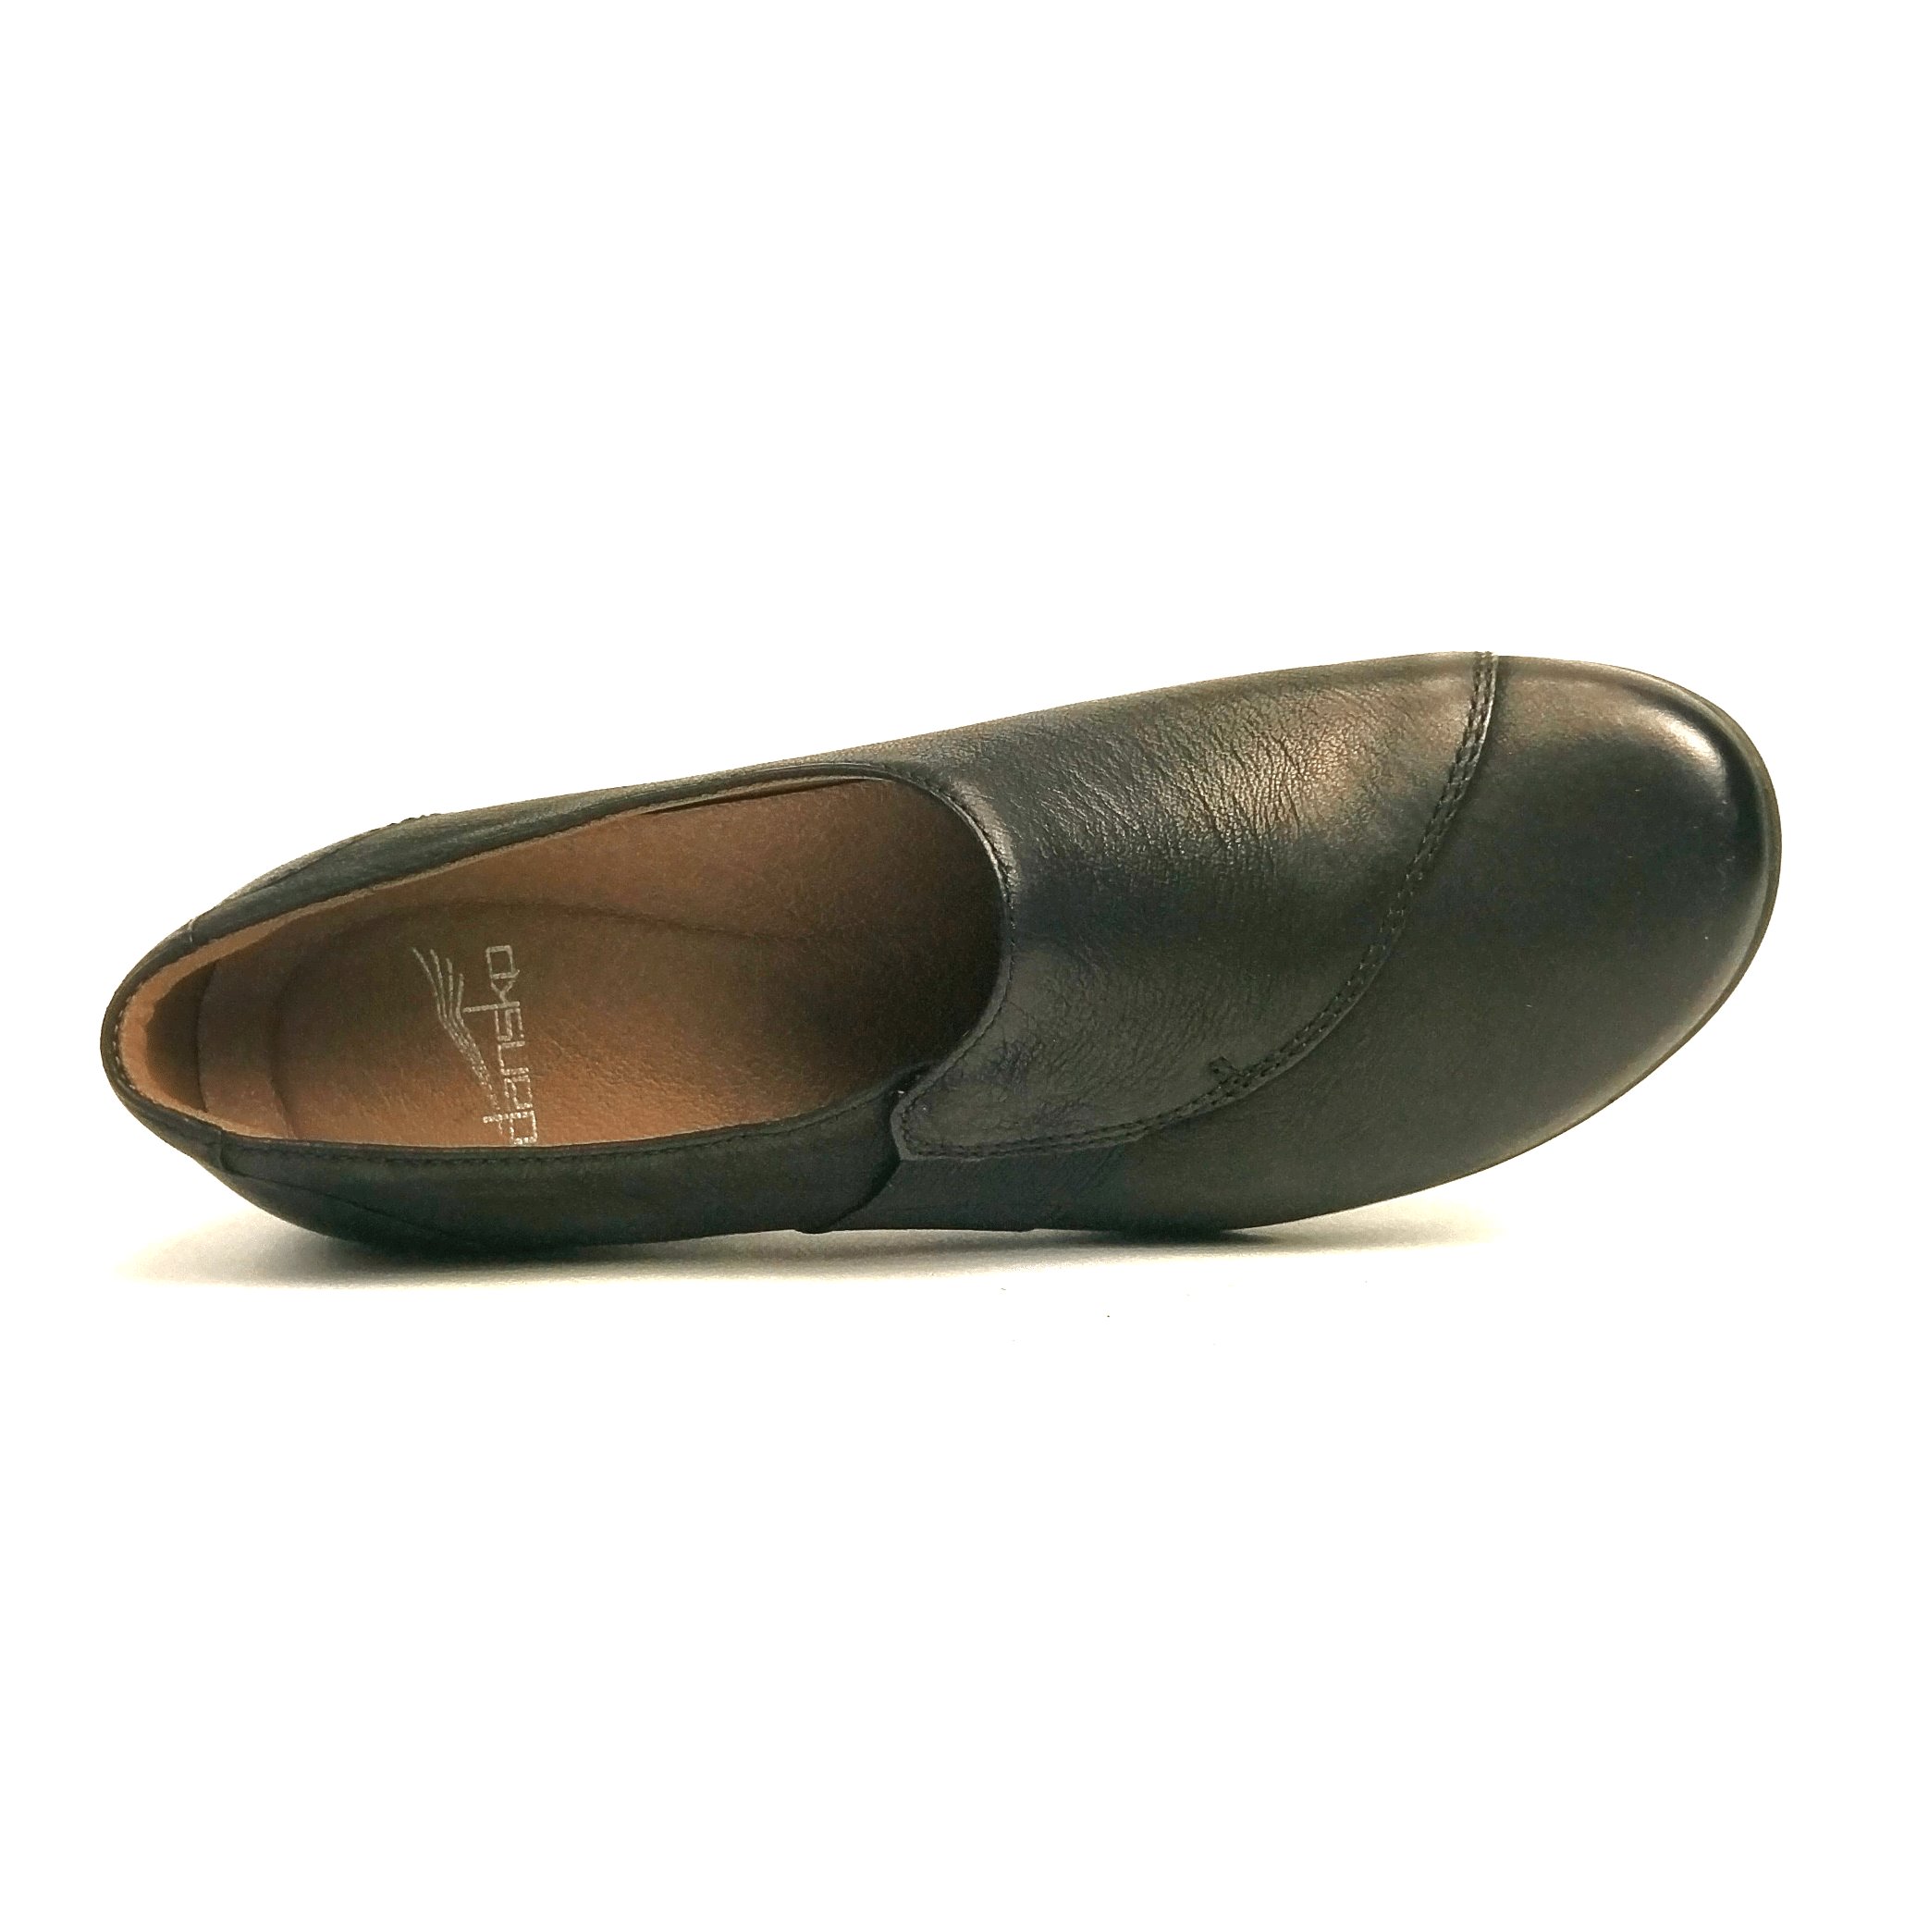 Dansko Fae Women's Leather Hidden Stretch Slip On Loafer Shoe